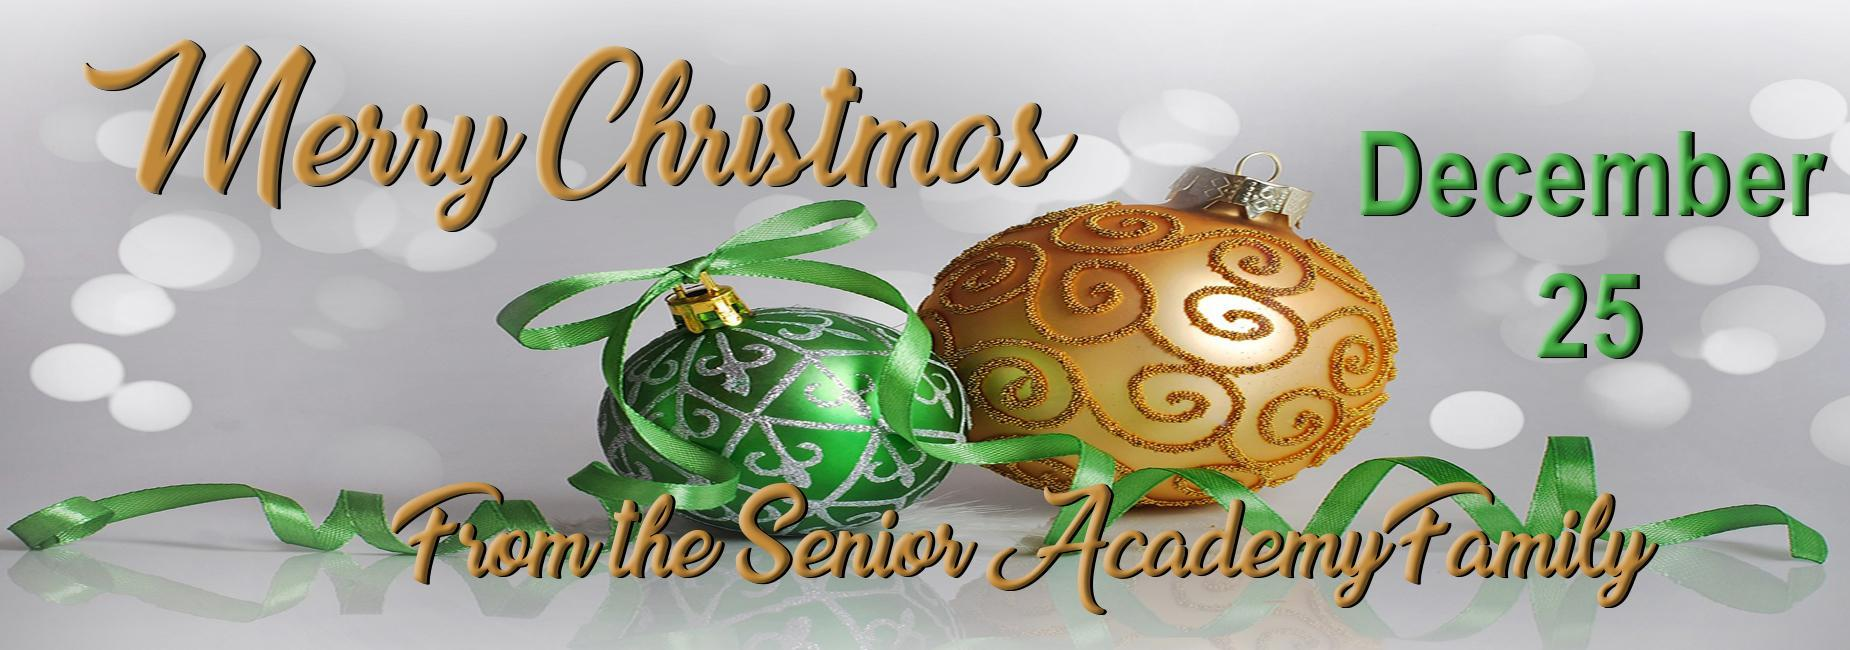 Merry Christmas from the Senior Academy Family December 25th